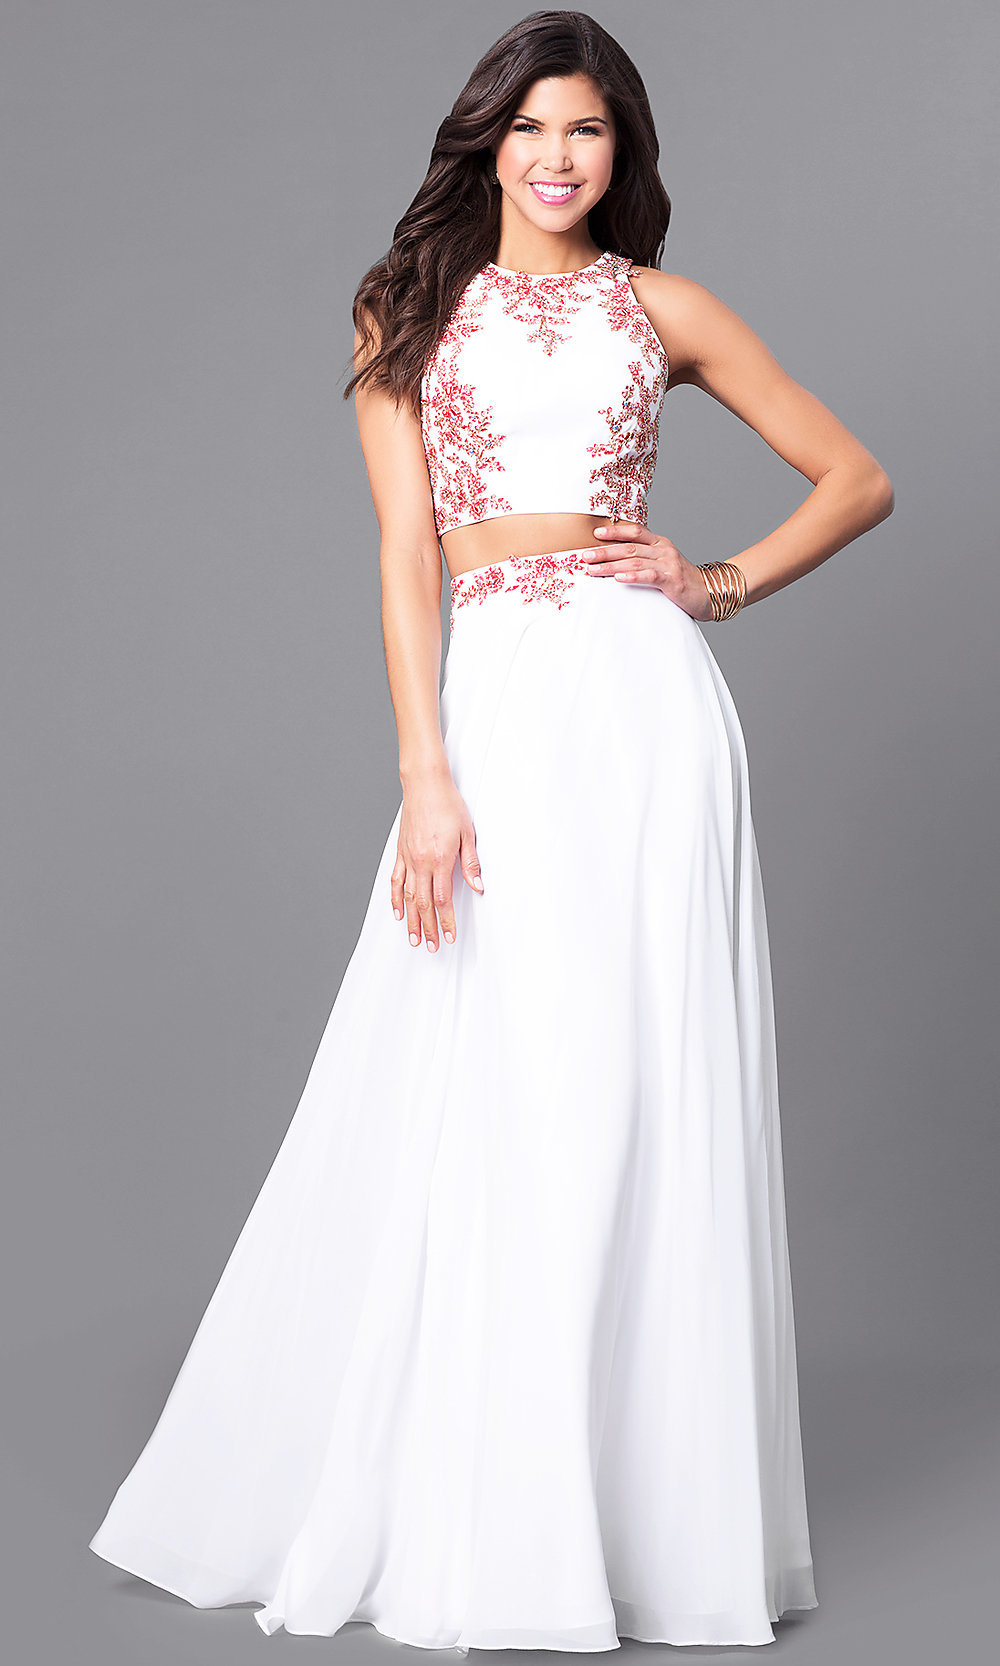 Long Off White Two-Piece Prom Dress - PromGirl